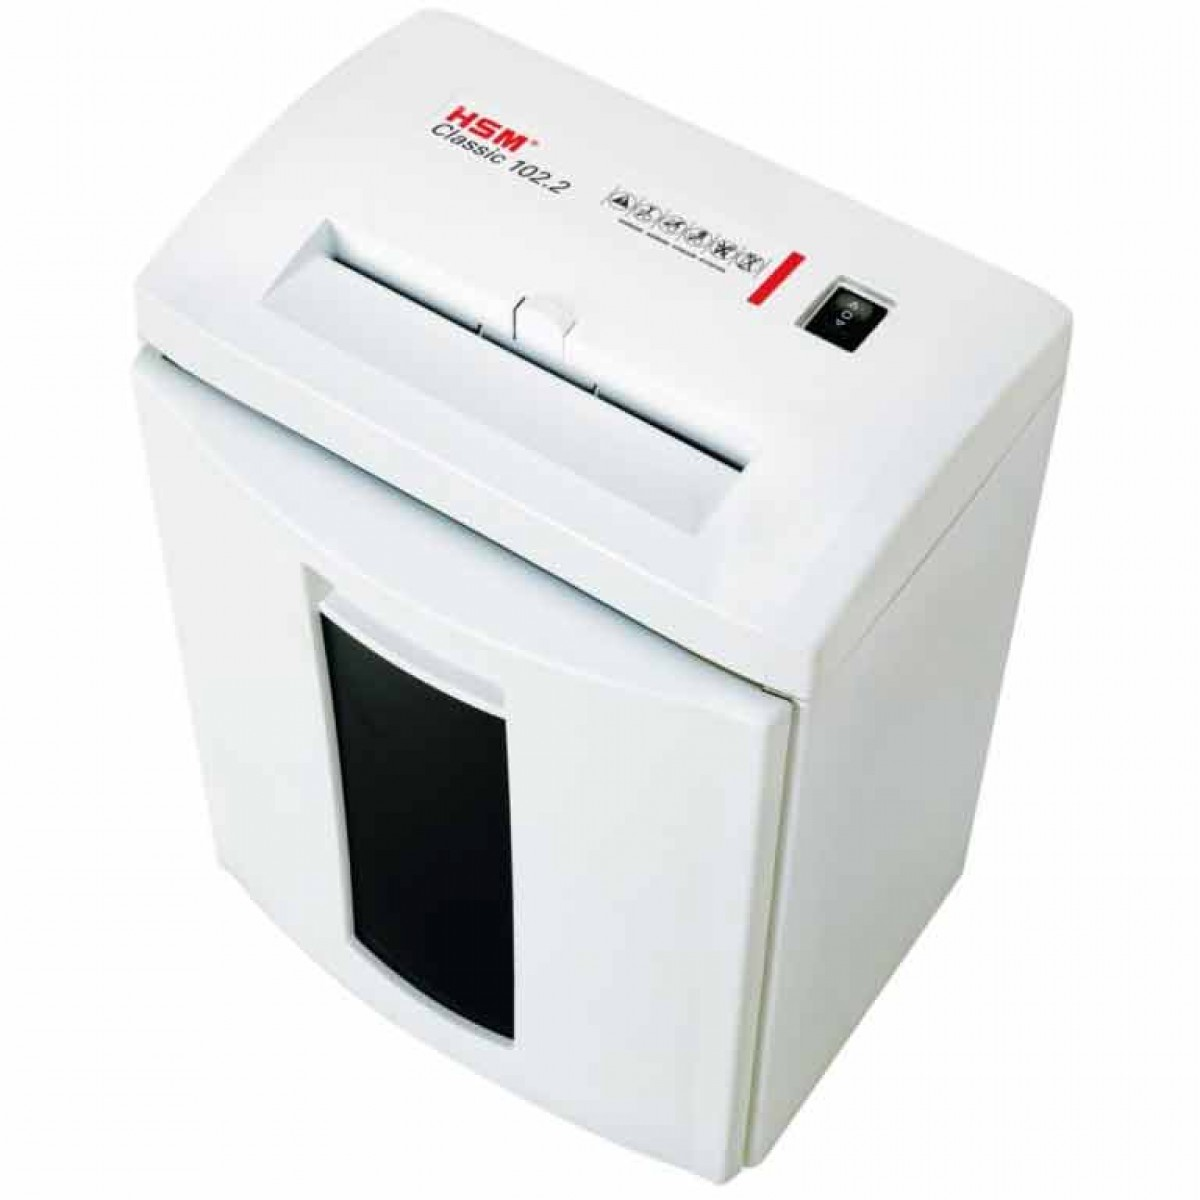 Personal Paper Shredders Hsm Classic 102 2 Small Office Shredder